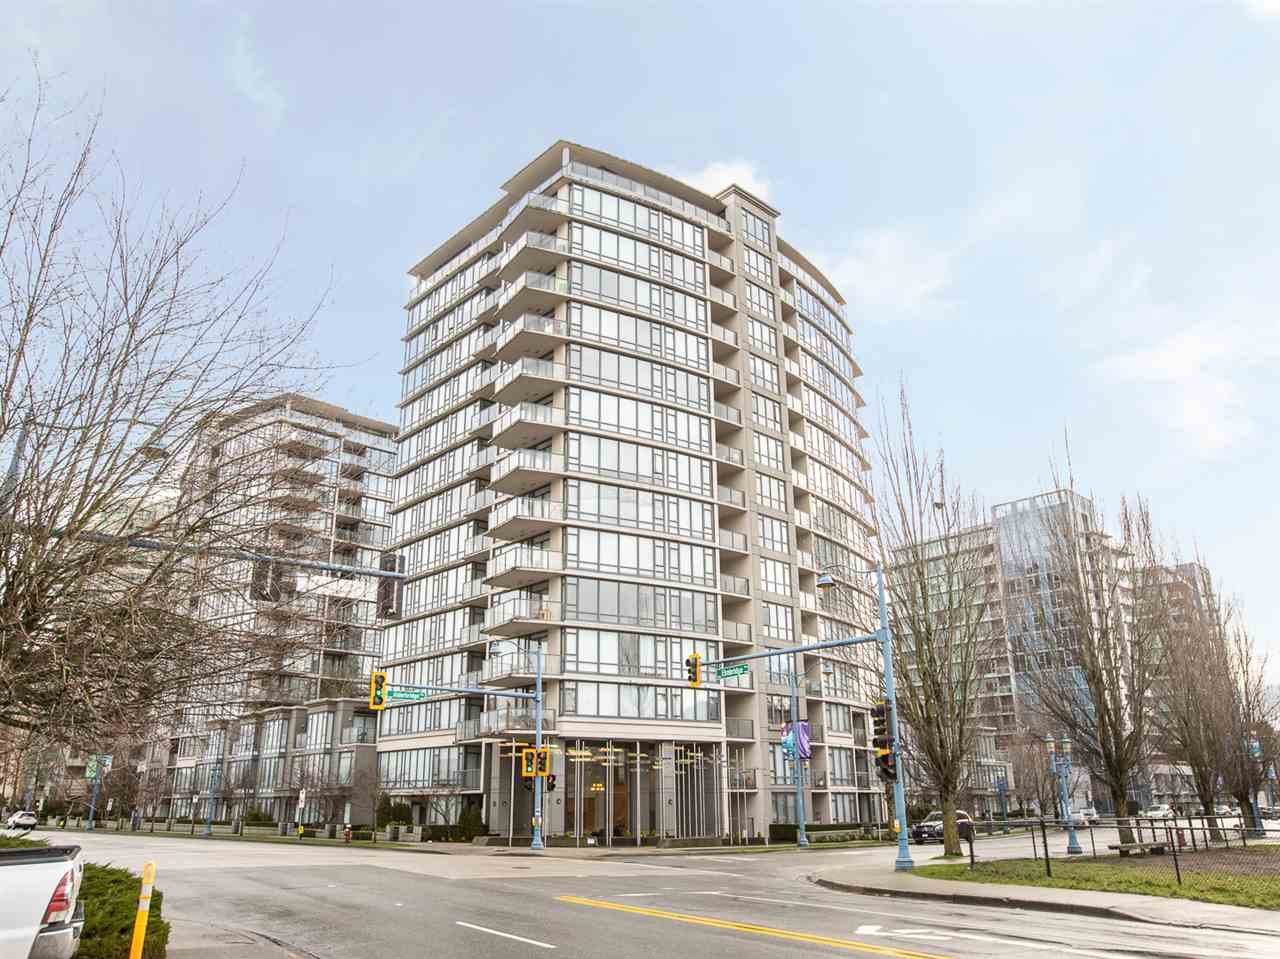 Main Photo: 703 7360 ELMBRIDGE Way in Richmond: Brighouse Condo for sale : MLS®# R2430734